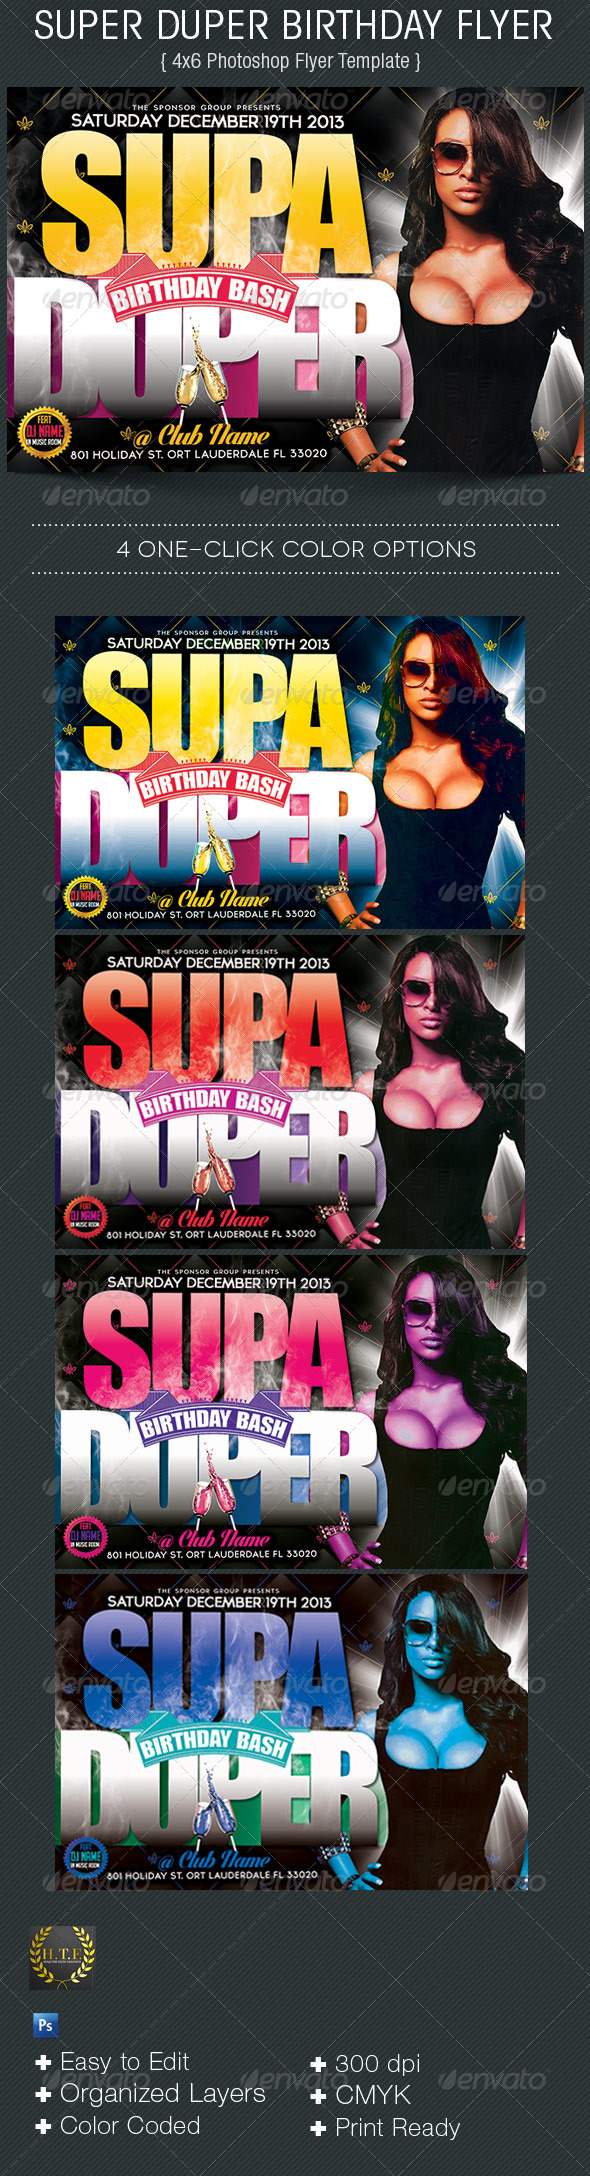 Super Duper Birthday Flyer - Flyers Print Templates